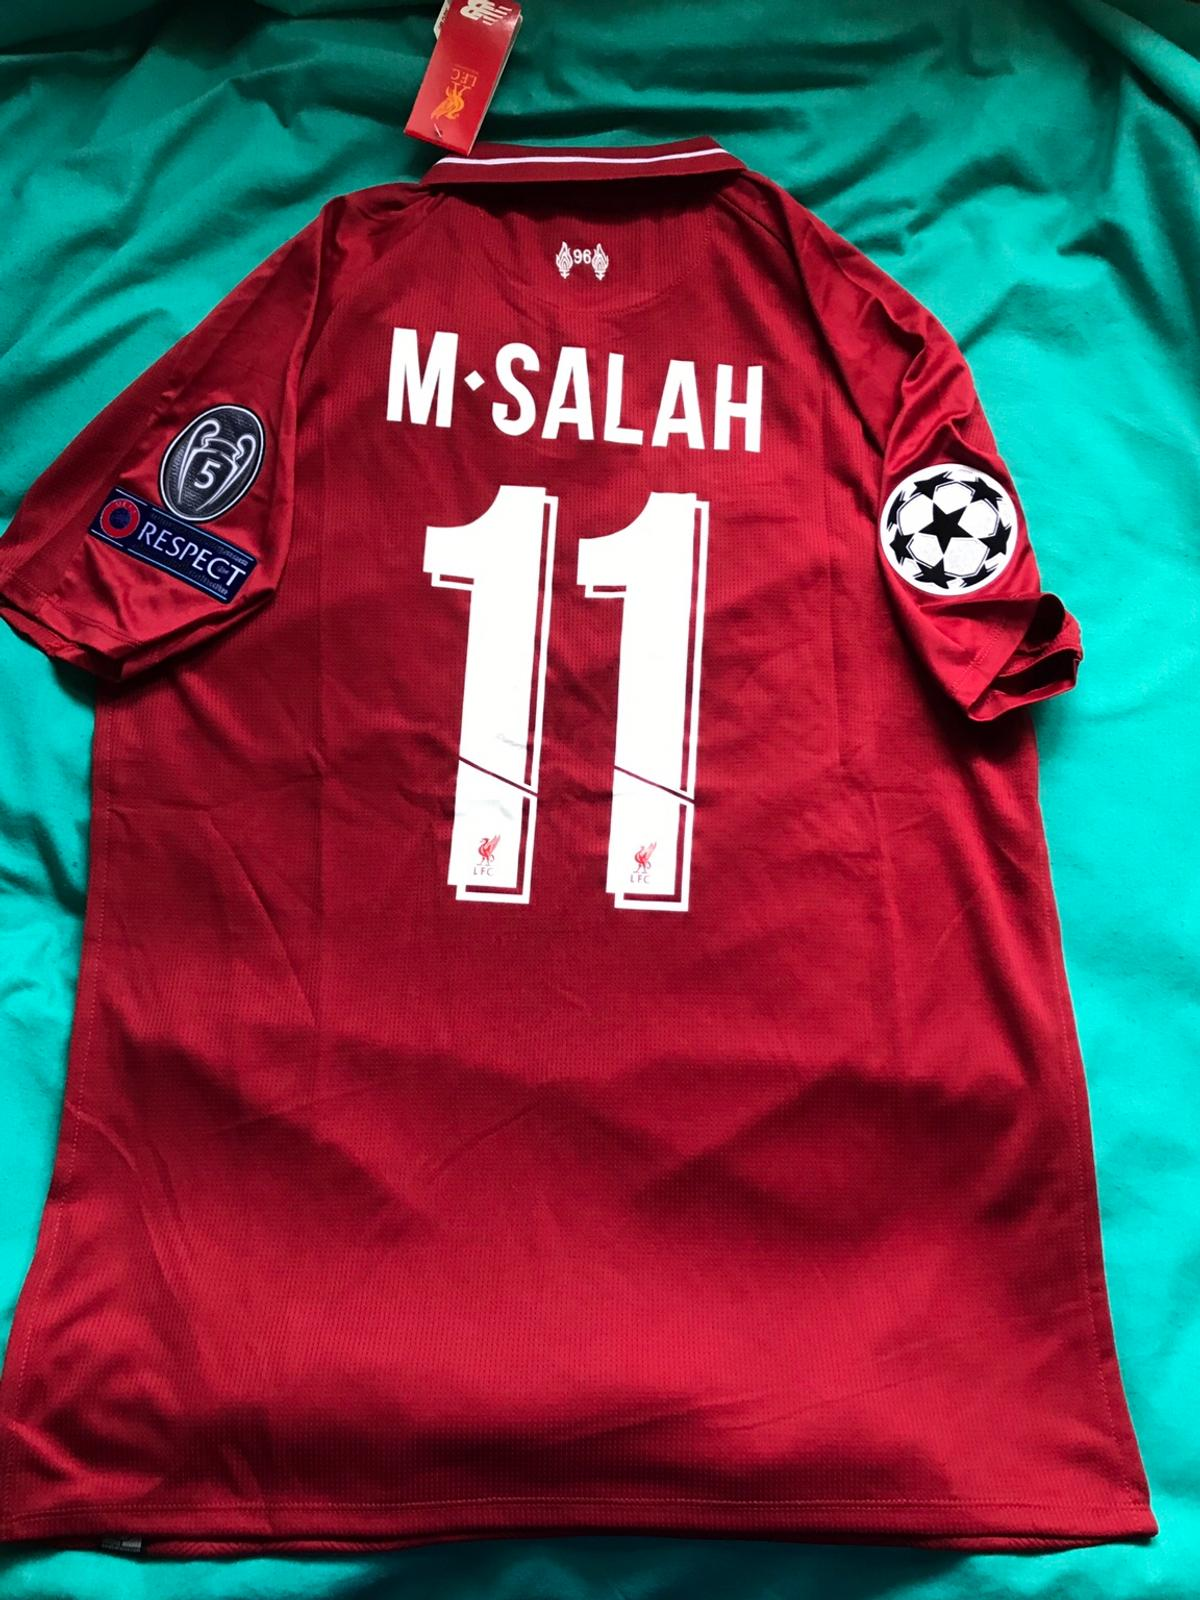 hot sale online a1871 581cf New liverpool shirt m Salah 11 2019 with tags